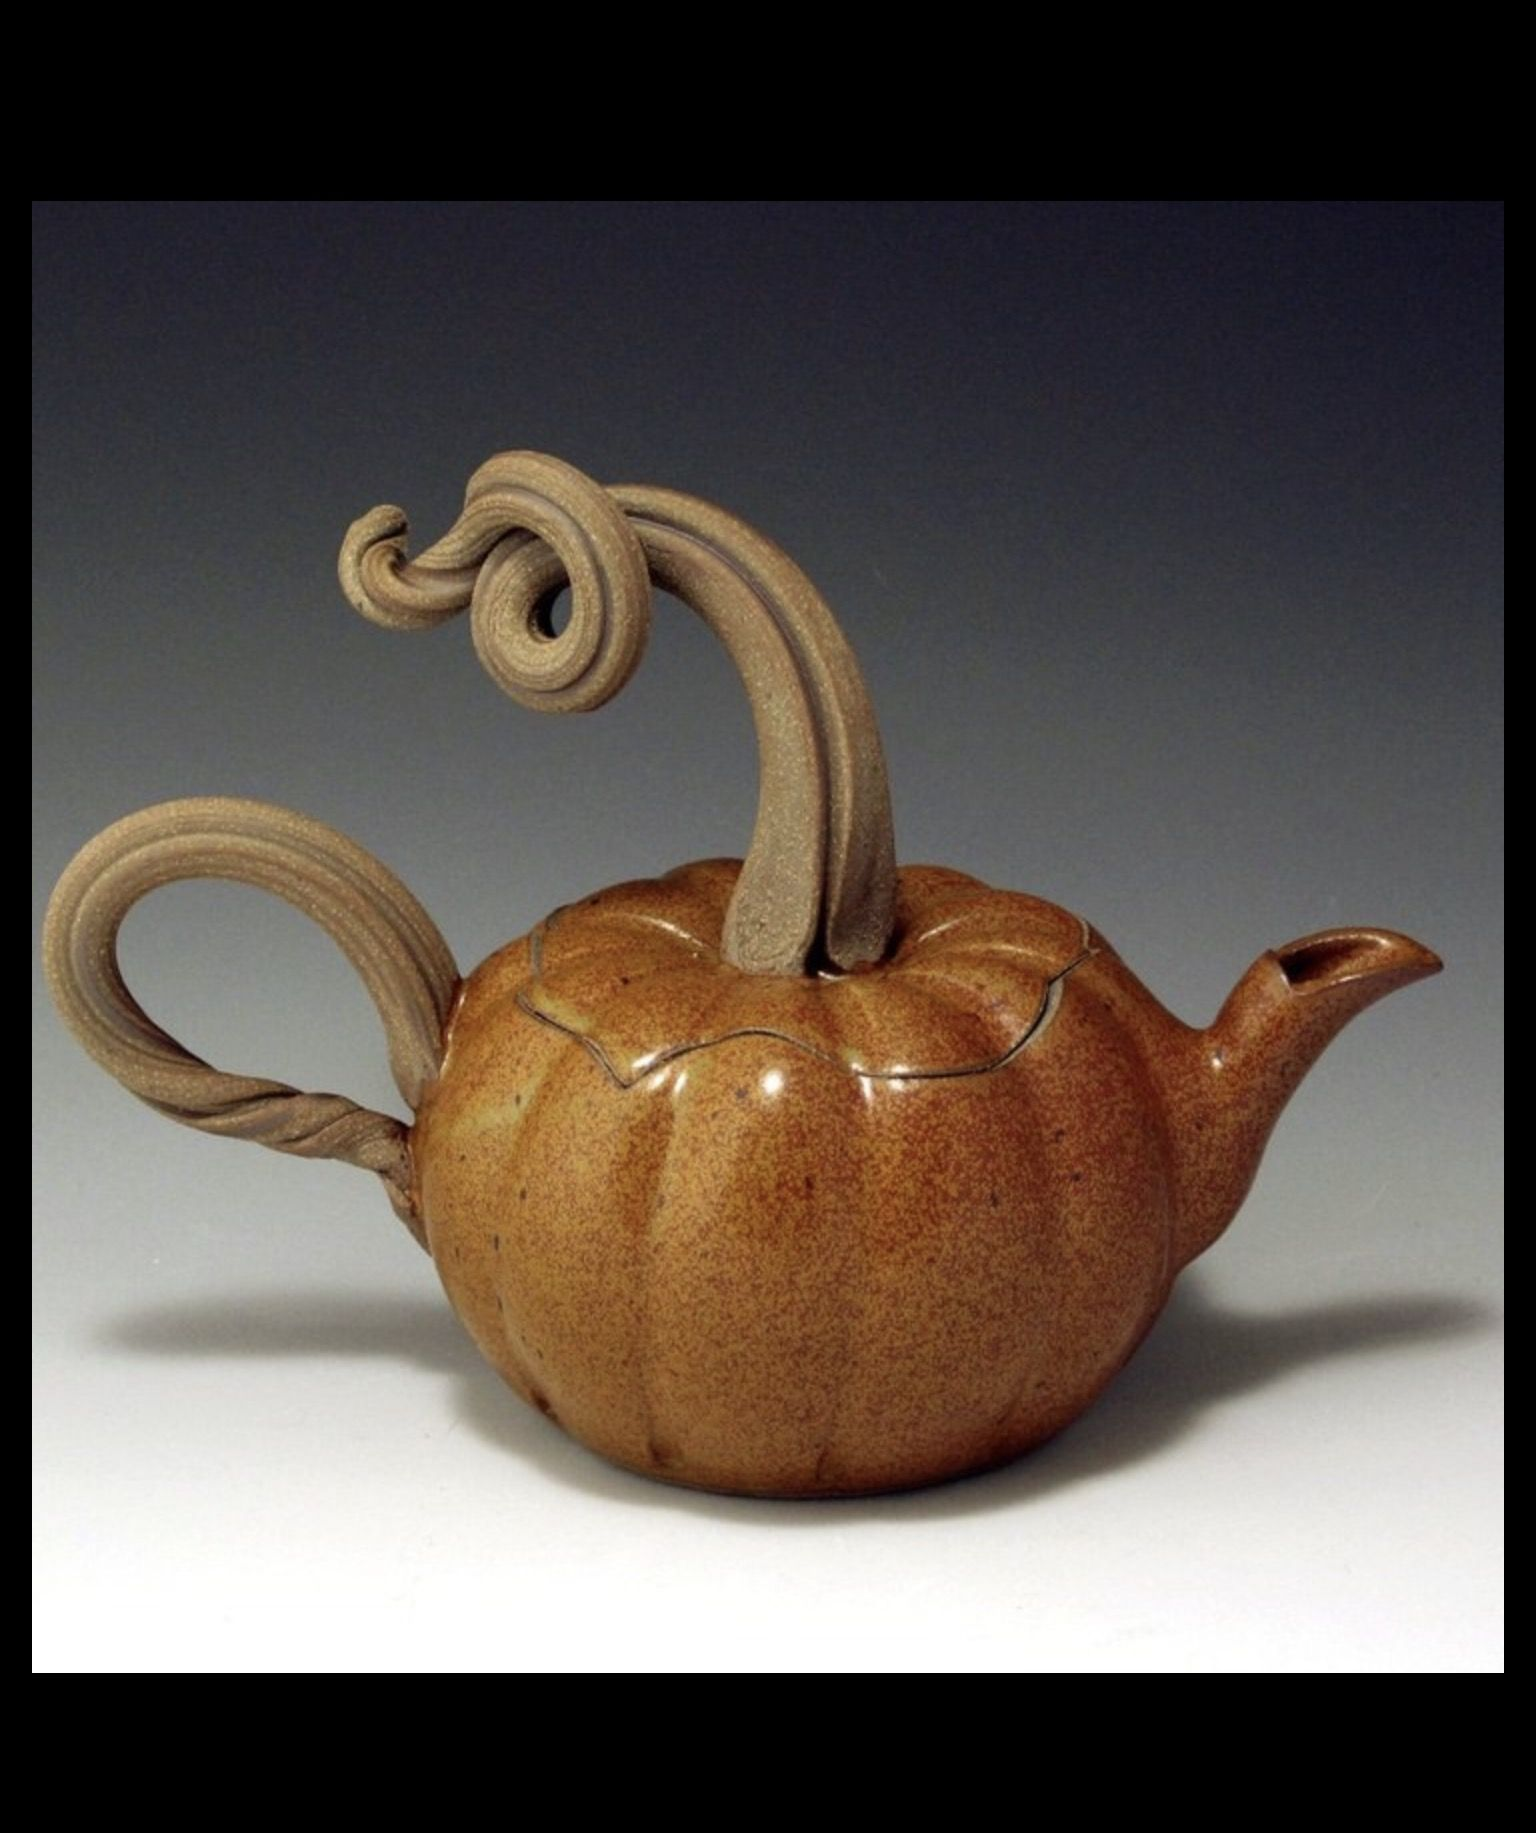 Pin By Allix Dupuy D Angeac On Ceramics Tea Pots Pumpkin Tea Clay Teapots